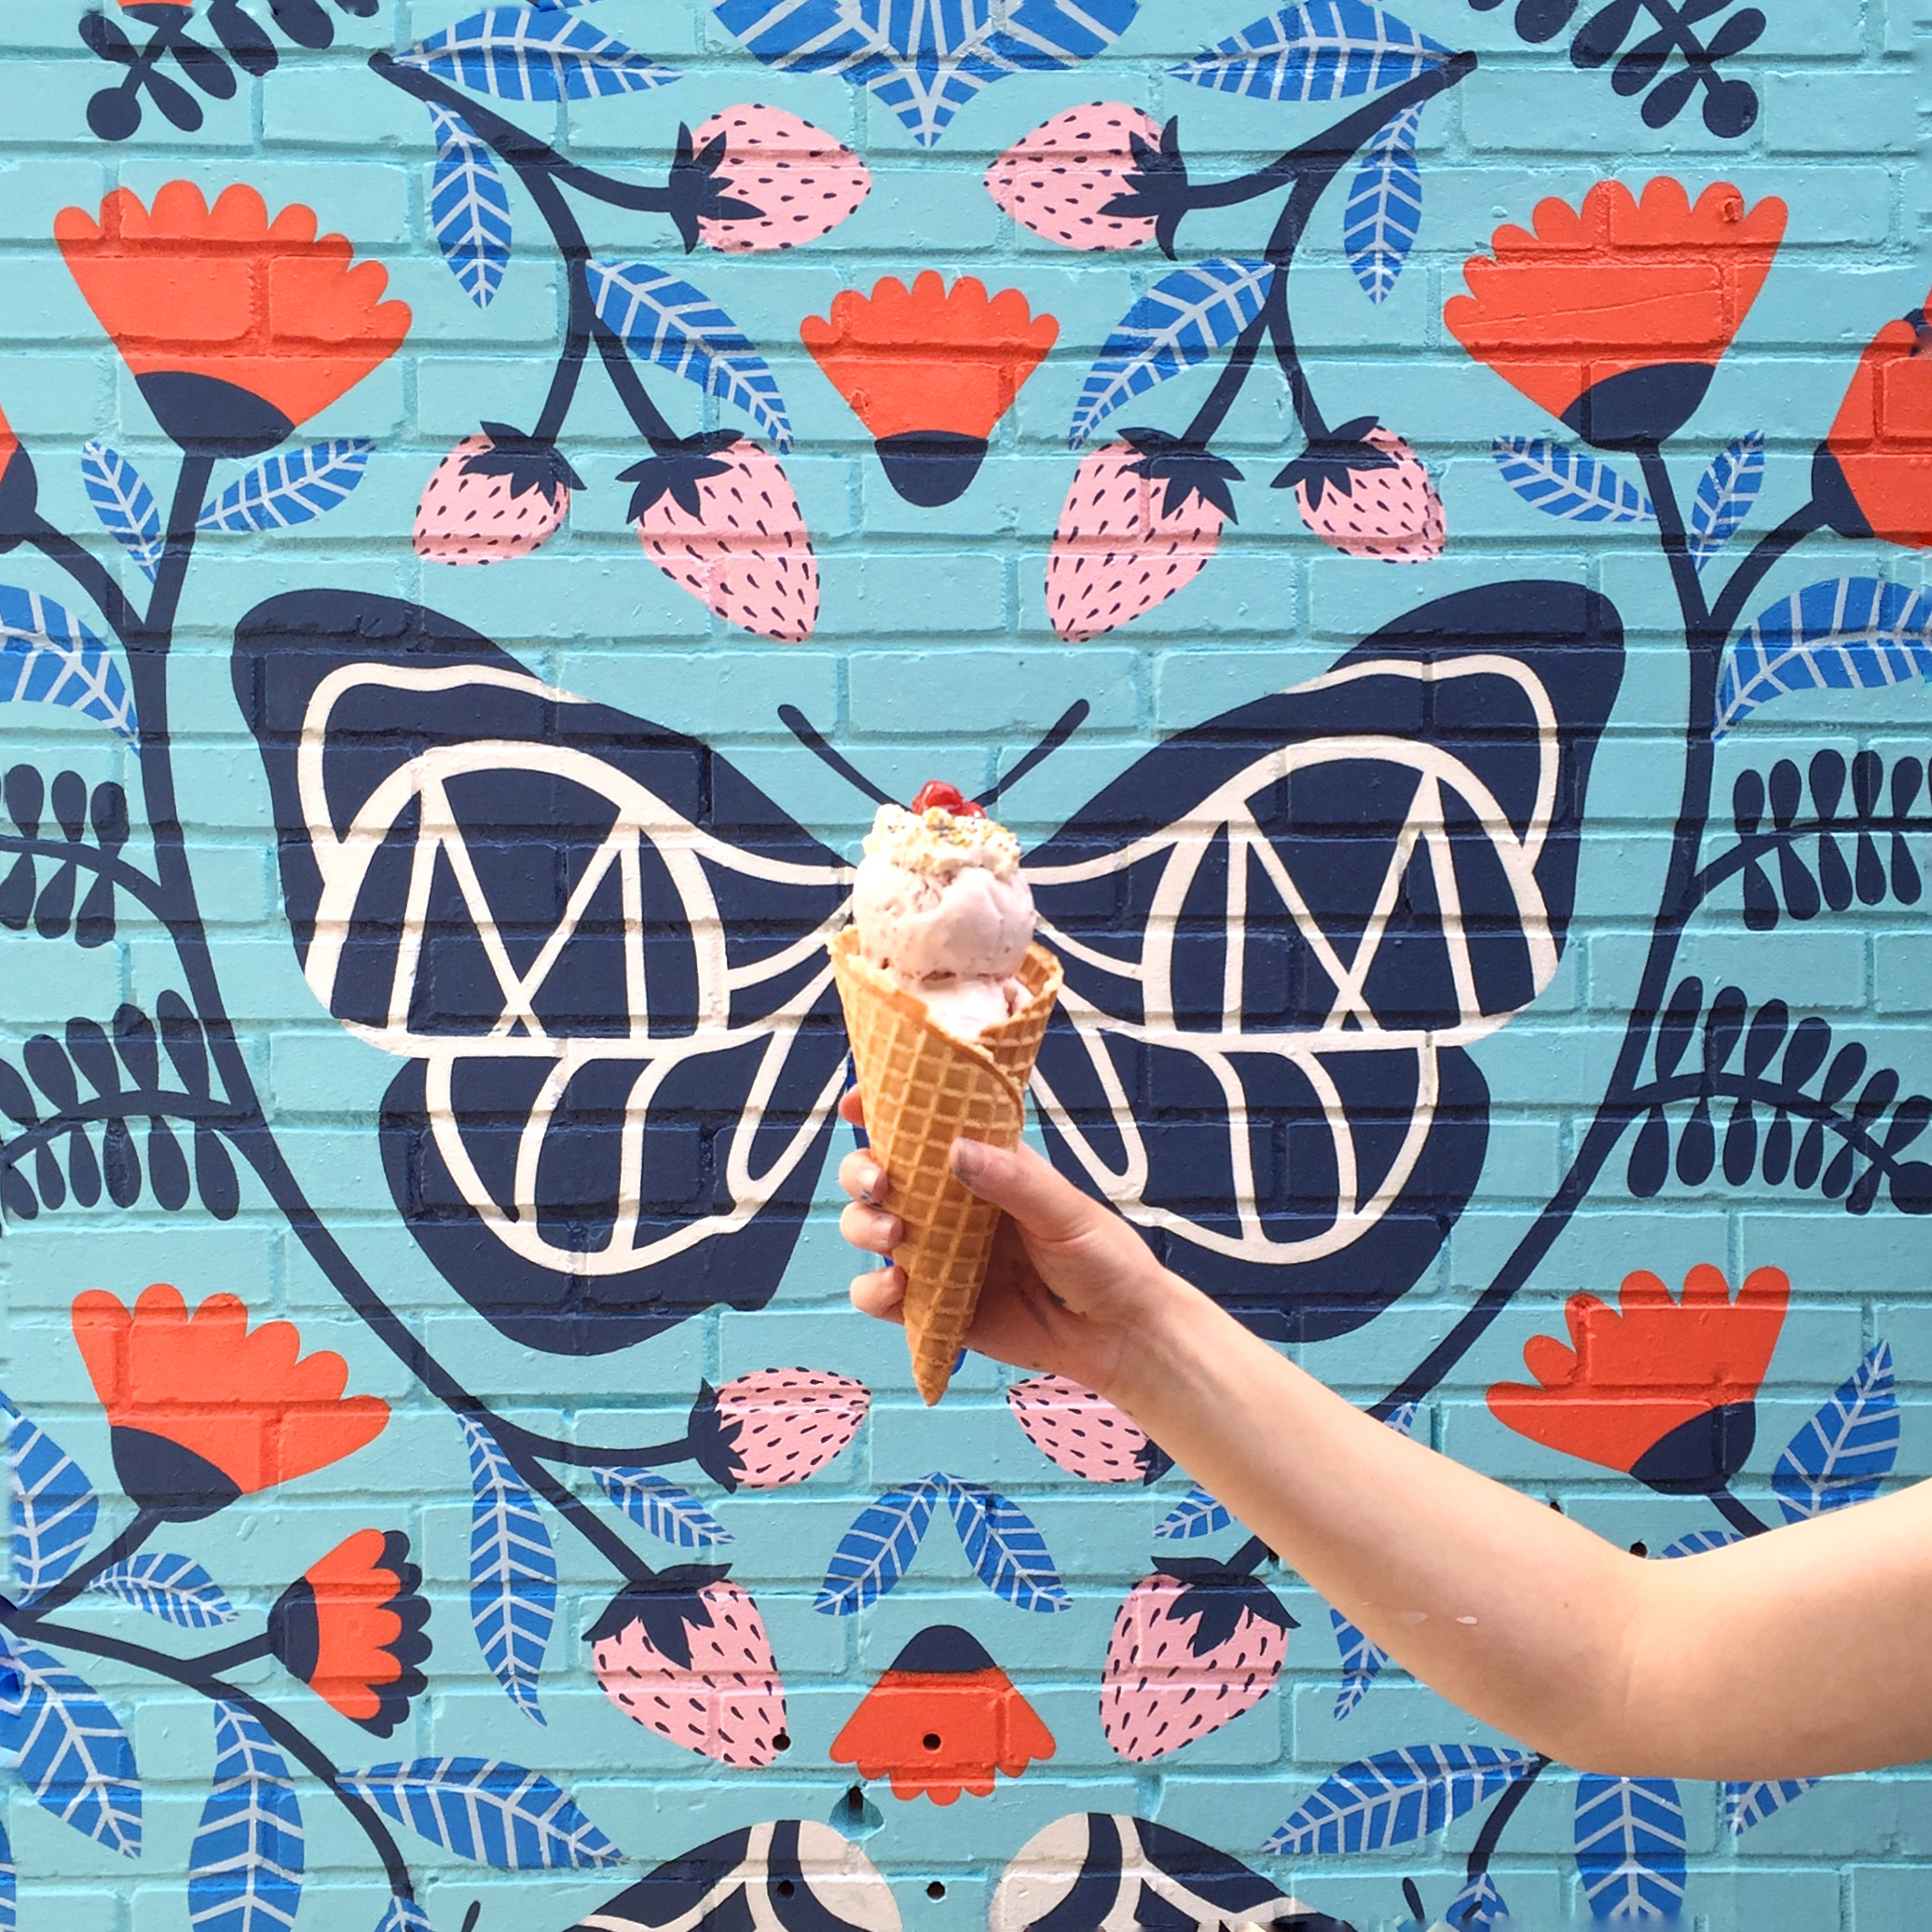 Molly Moon's Ice-Cream mural, Wallingford location